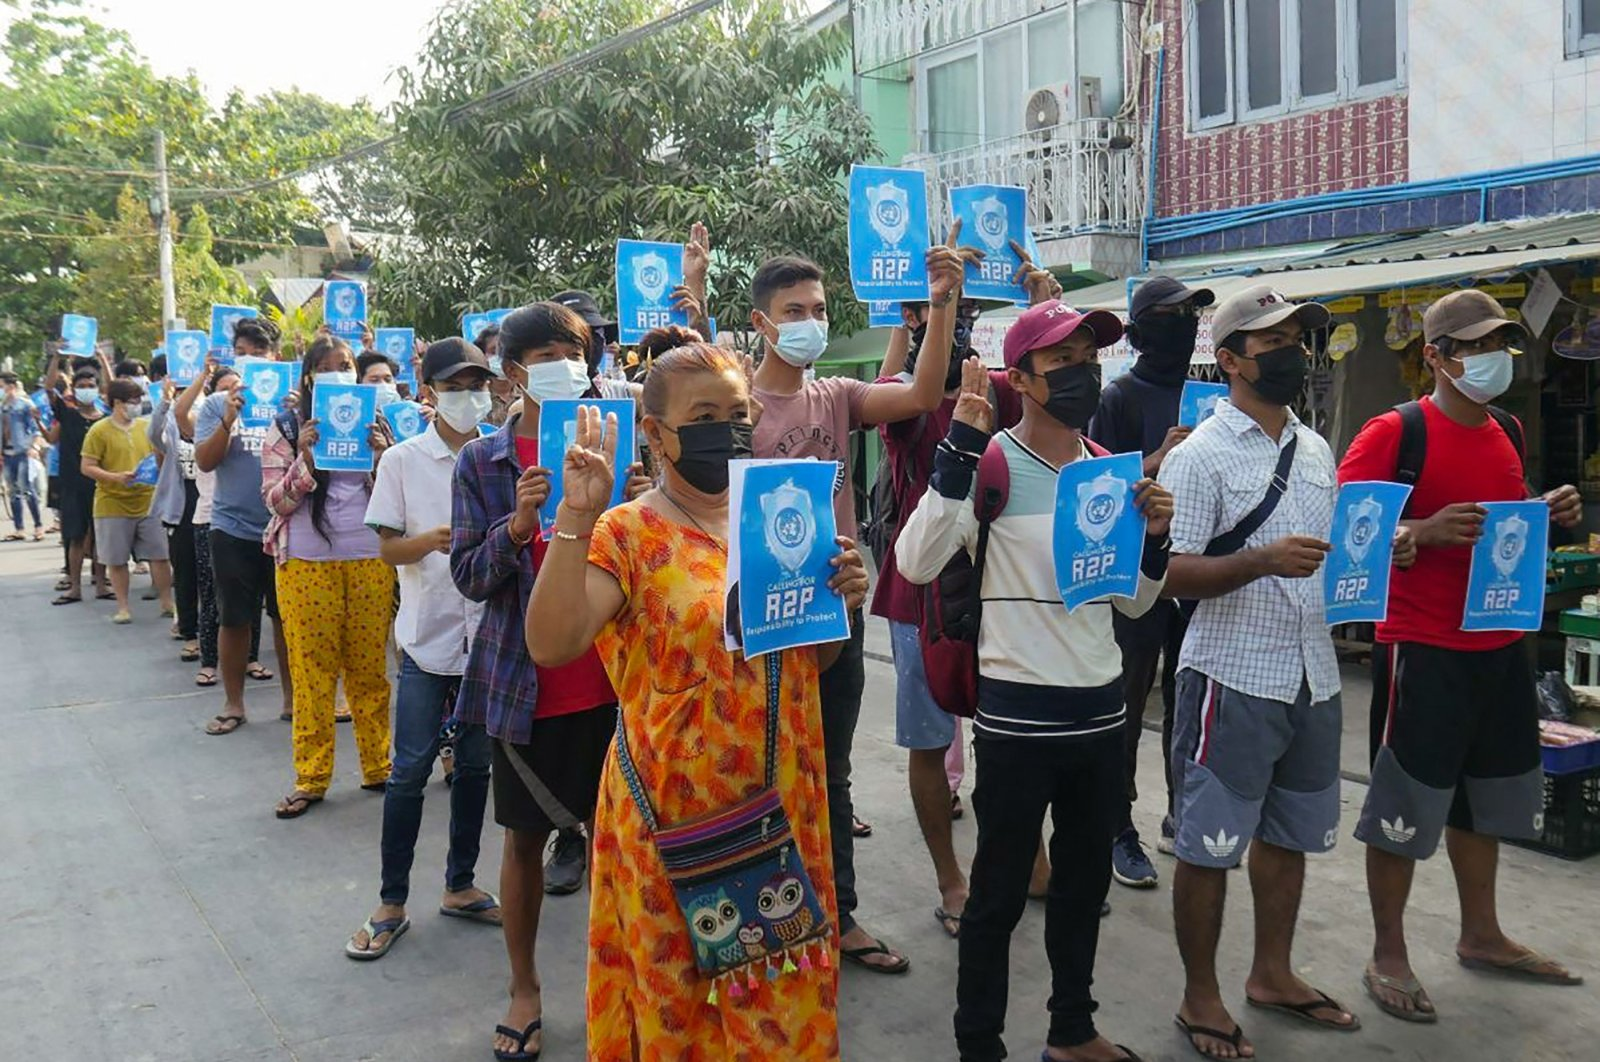 """Protesters hold signs relating to """"R2P,"""" or the """"Responsibility to Protect"""" principle that the international community should take action against a state that has failed to protect its population, in Yangon's Thaketa township, Myanmar, April 1, 2021. (AFP Photo)"""